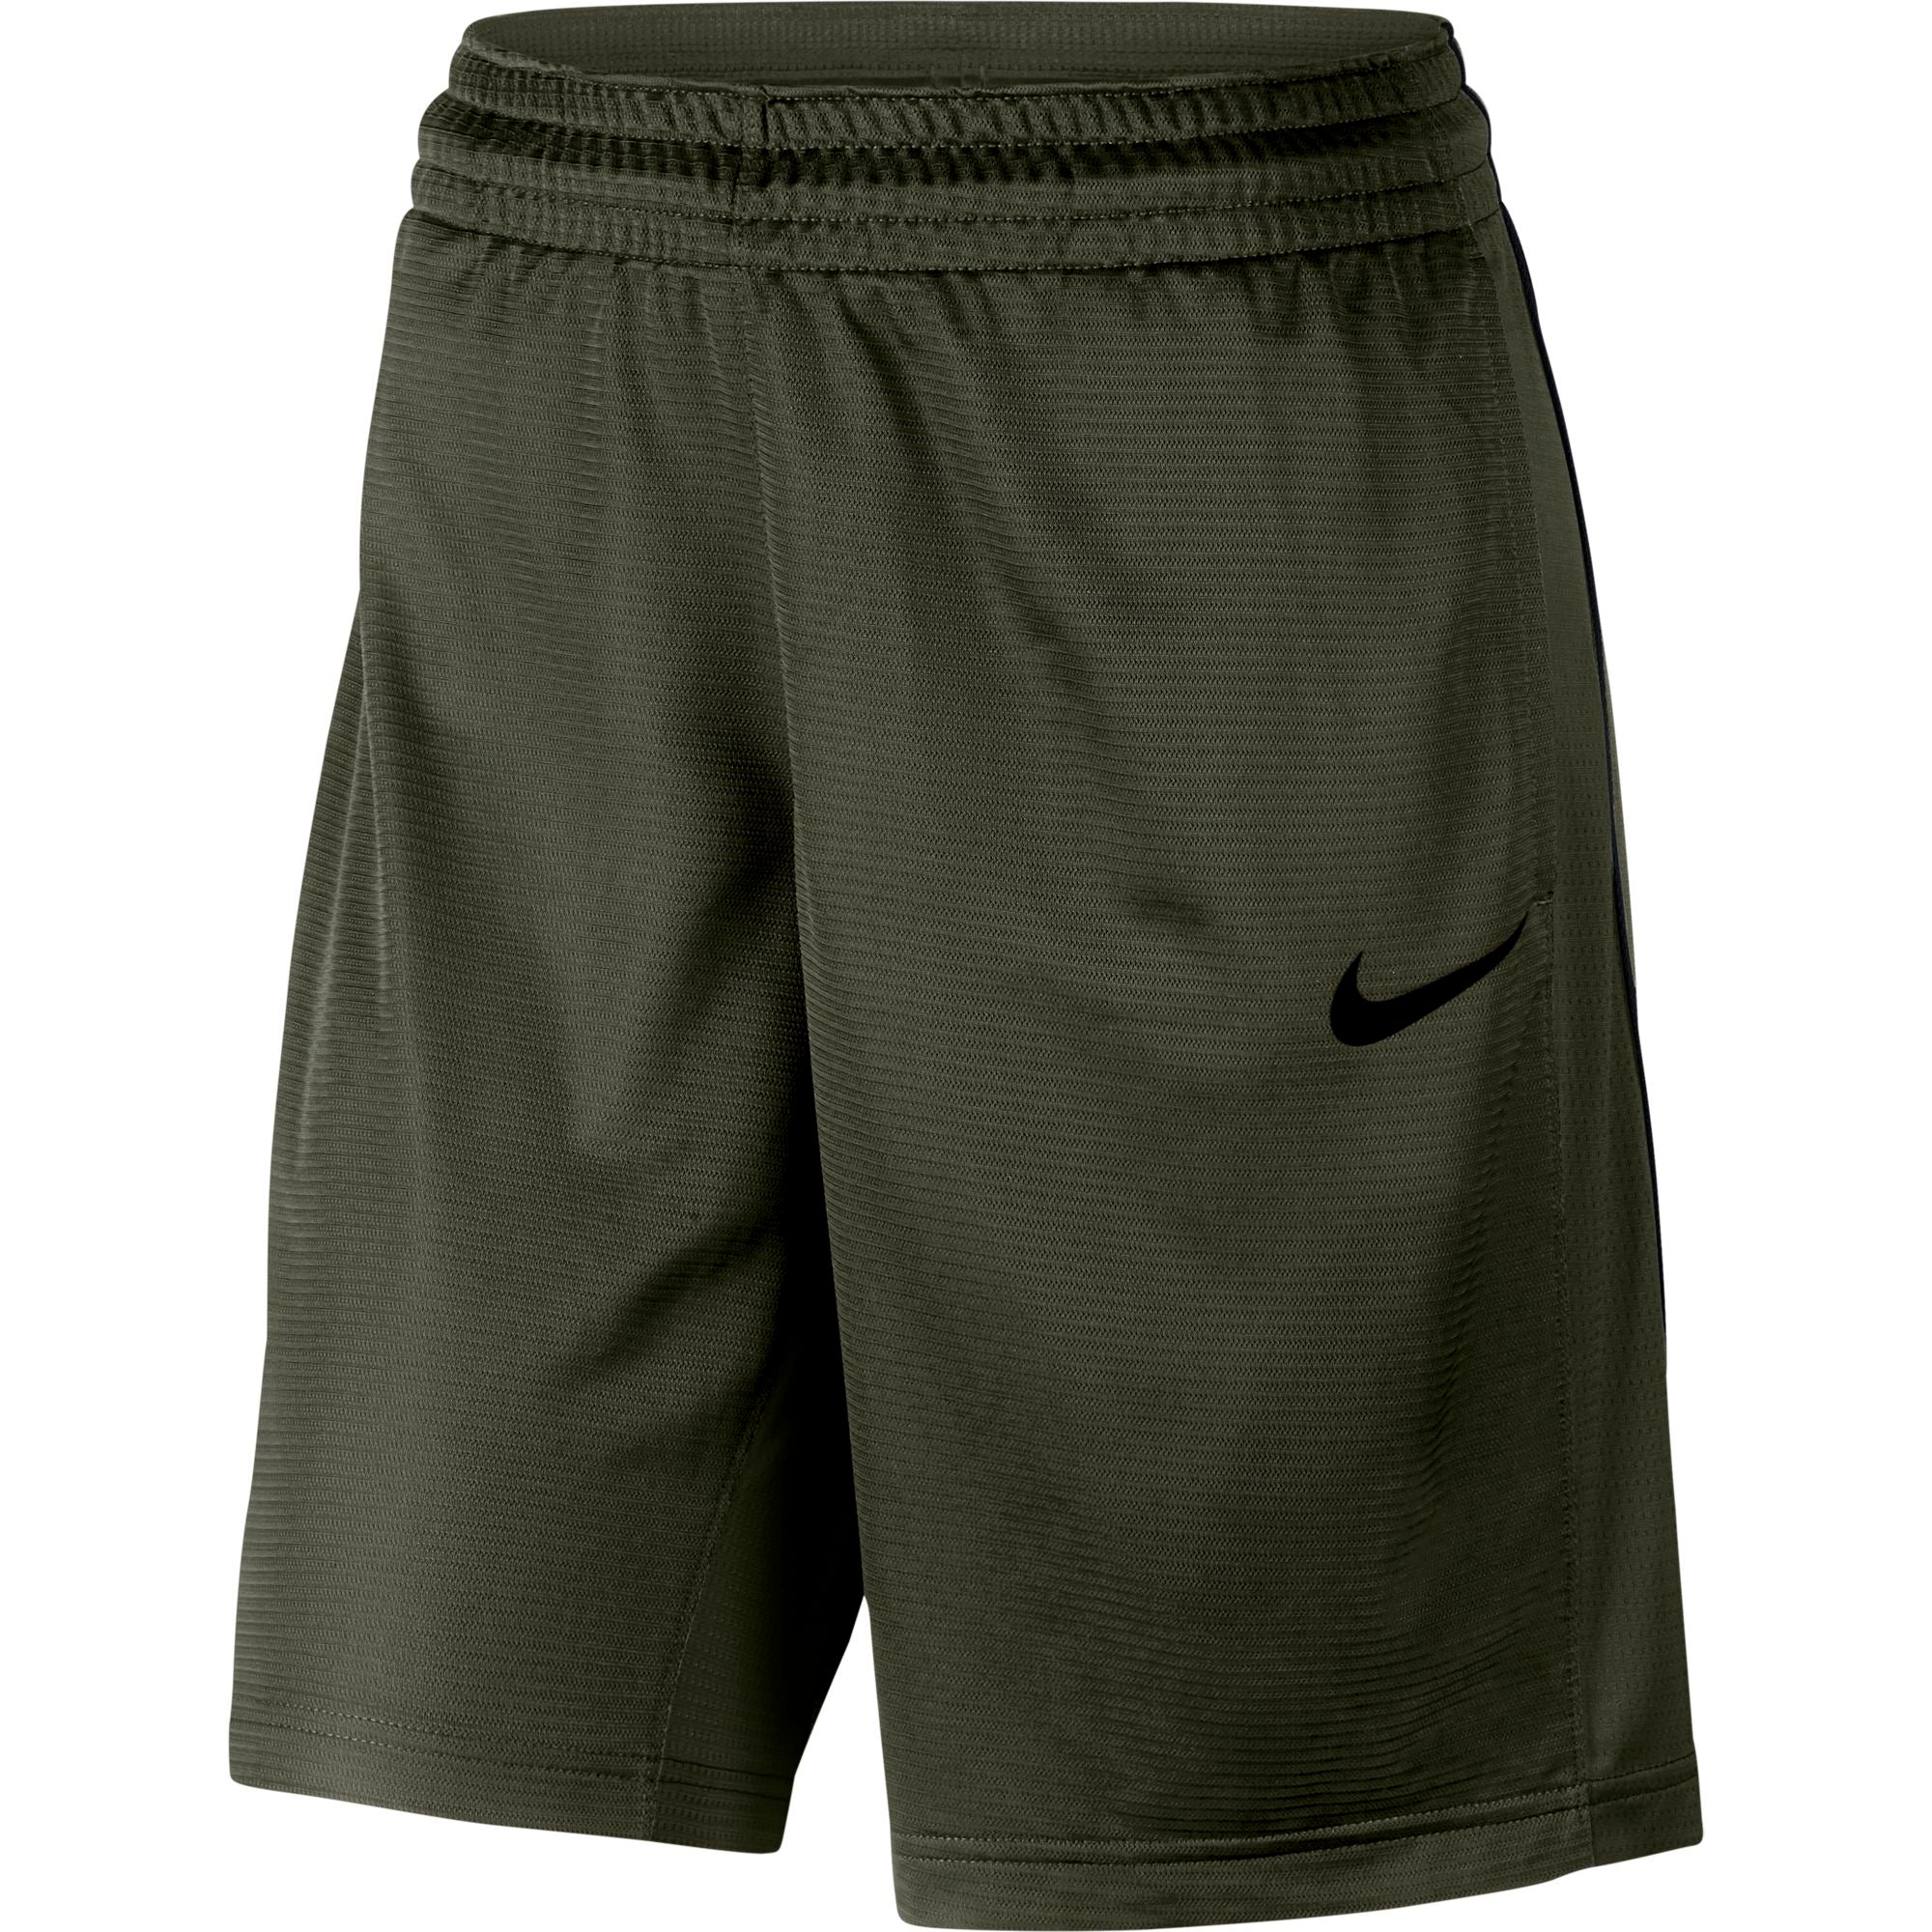 Nike Womens Basketball Dry Shorts - NK-869472-325